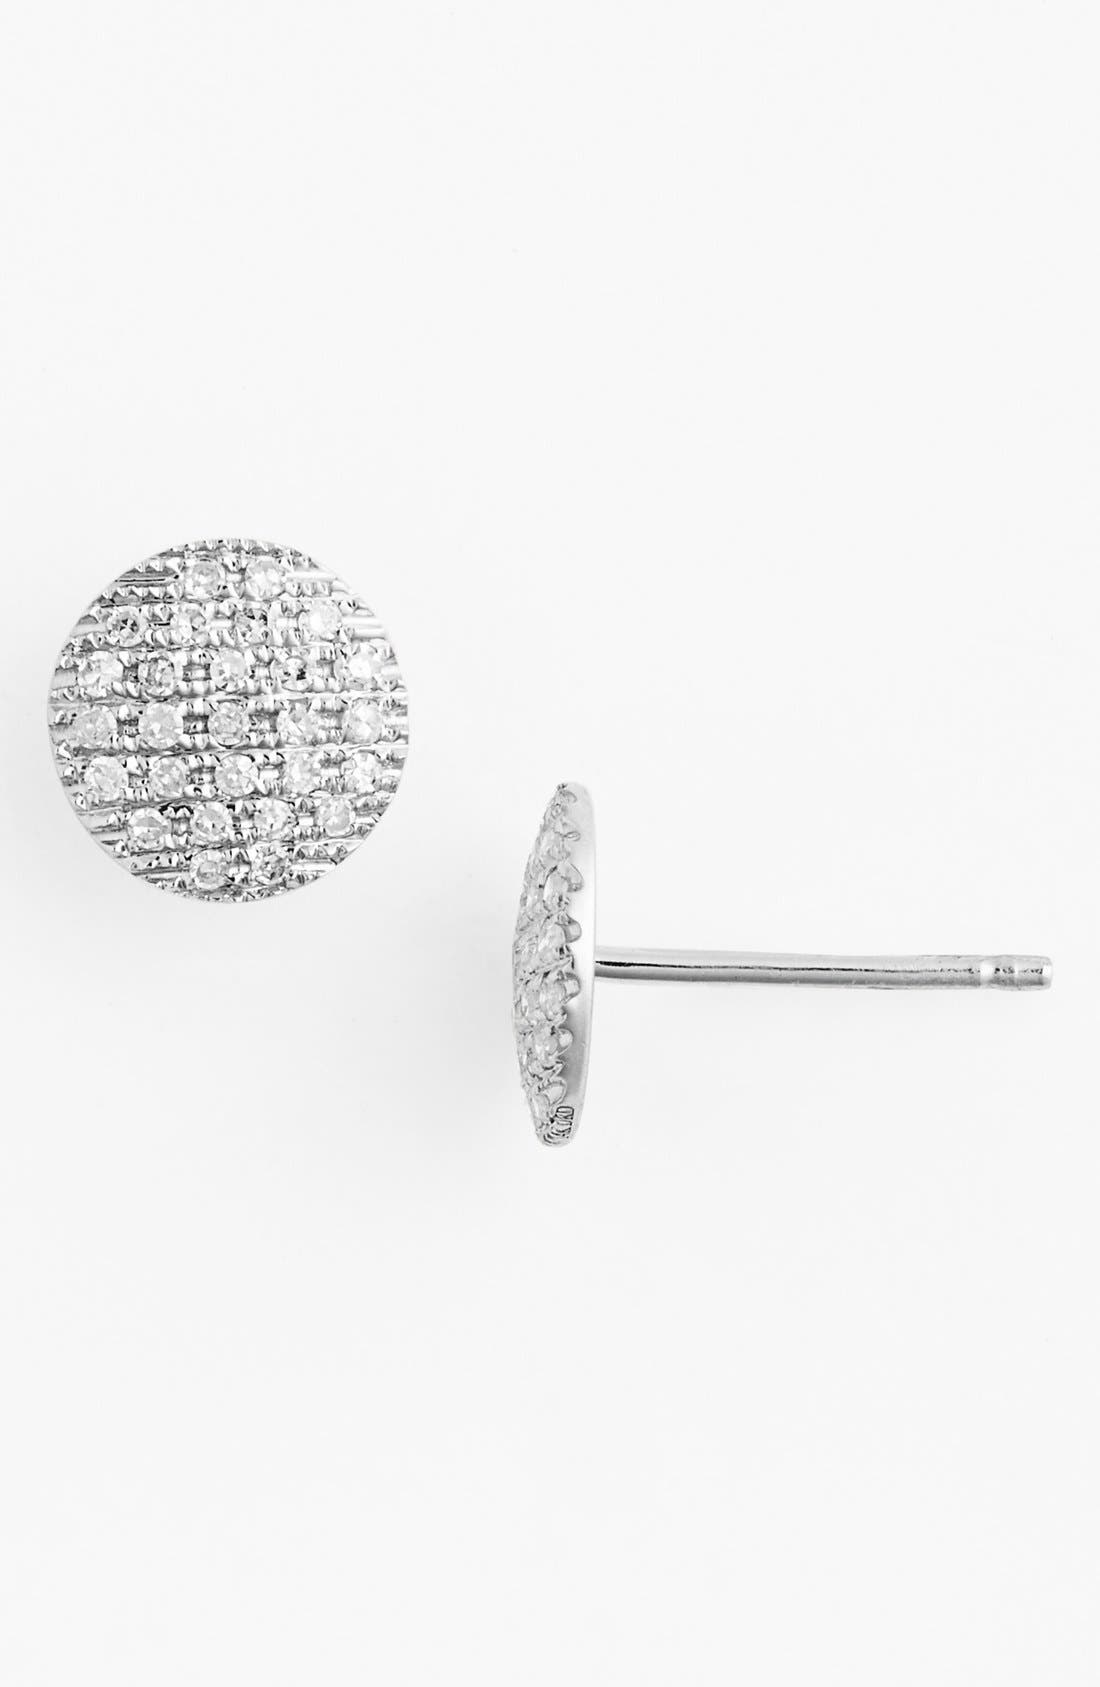 Dana Rebecca Designs 'Lauren Joy' Diamond Disc Stud Earrings